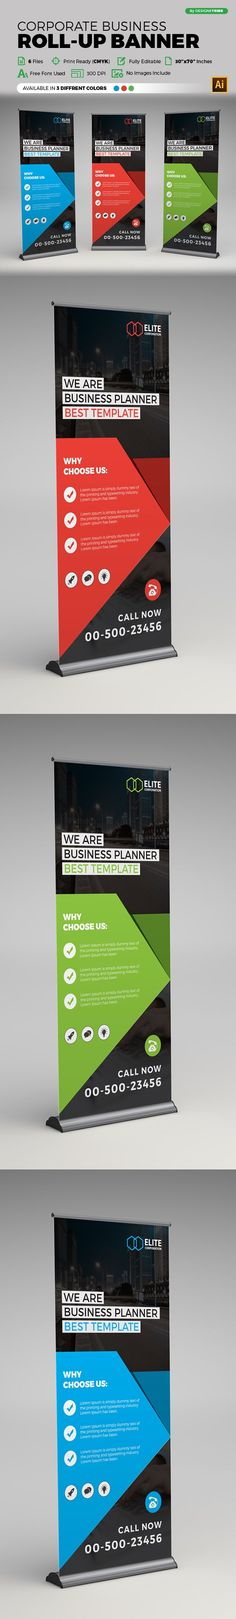 Corporate Business Roll-up Banner  @creativework247